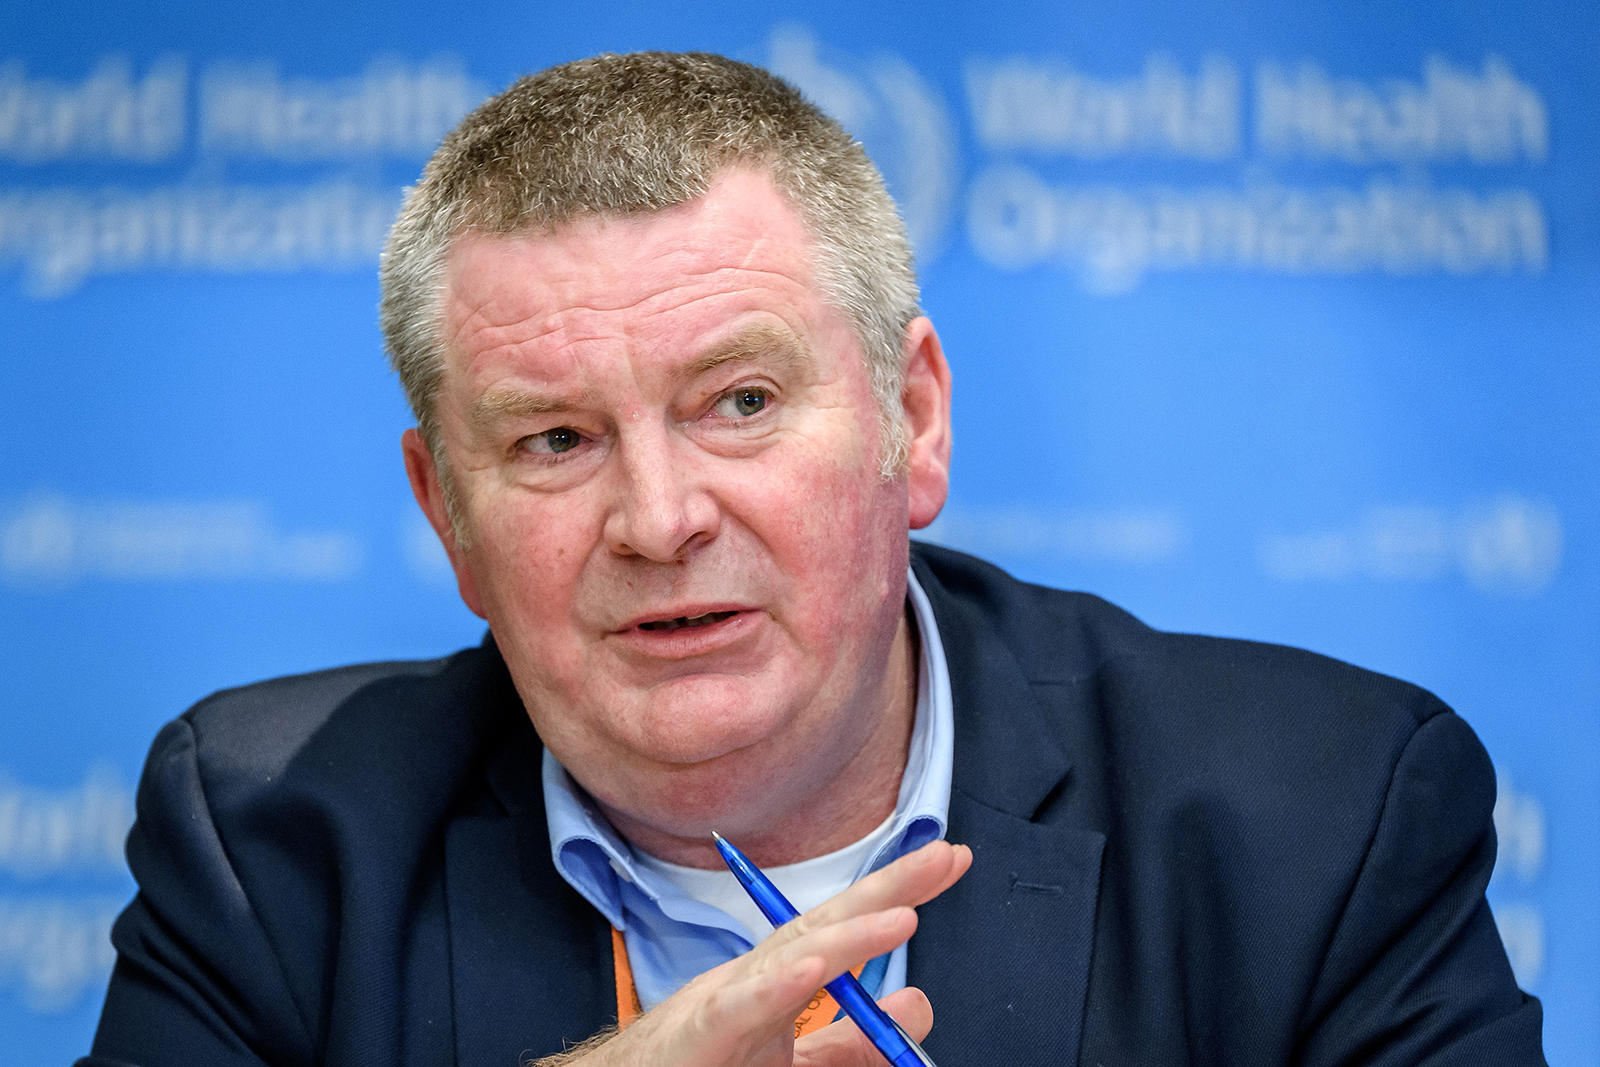 World Health Organization Health Emergencies Program Director Michael Ryan talks during a daily press briefing on Covid-19, at the WHO heardquarters in Geneva on March 11, 2020.